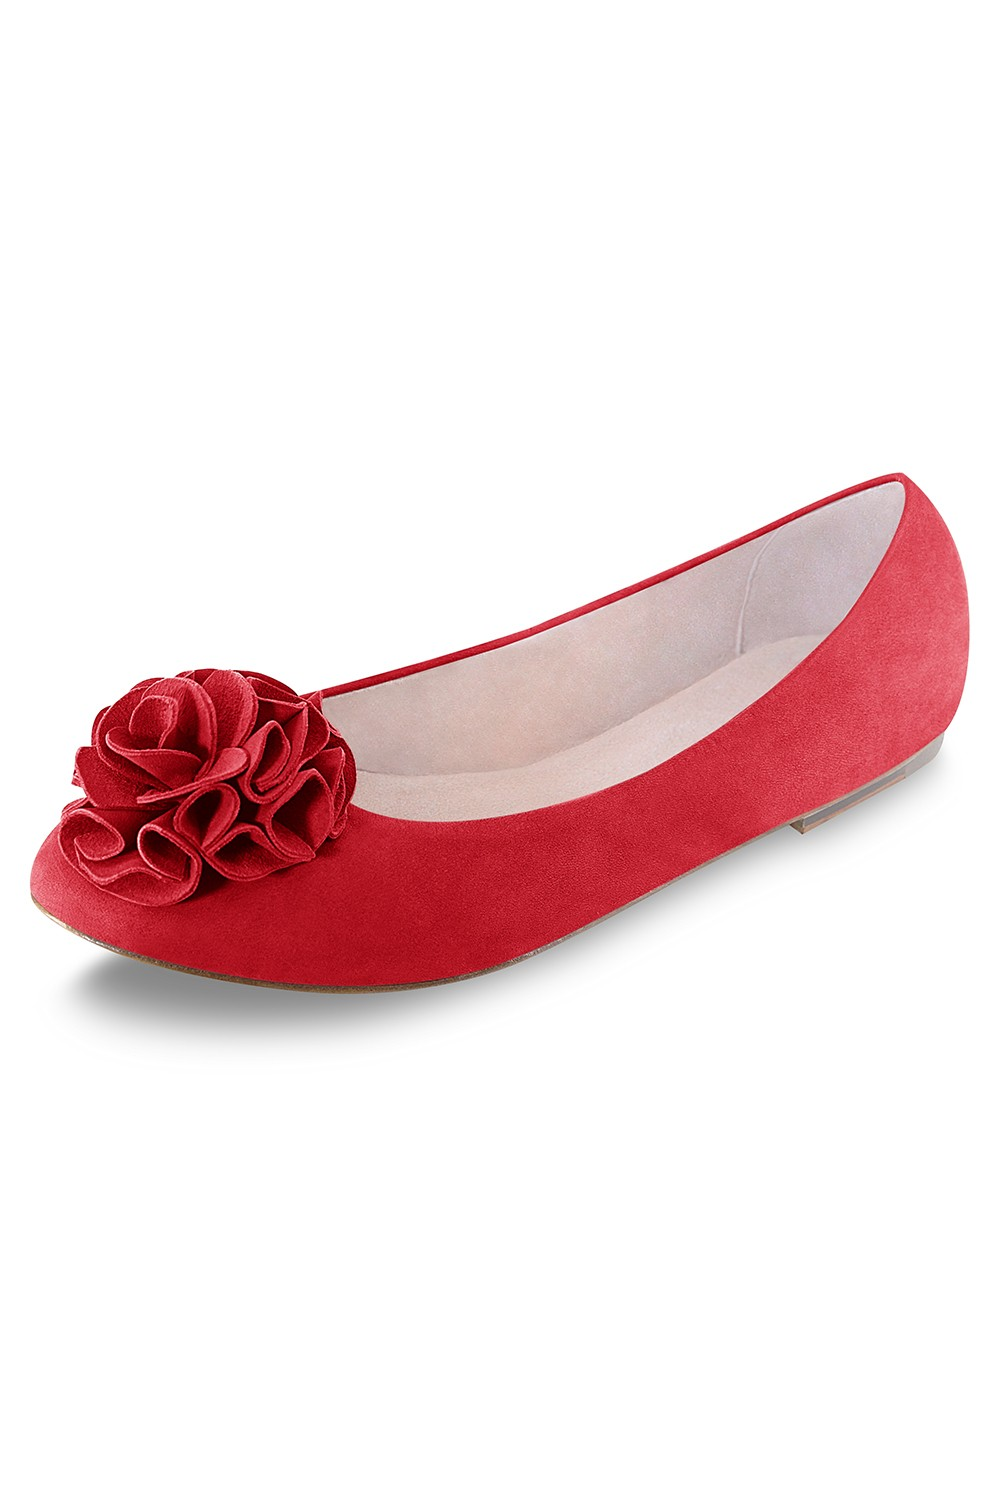 Shoe Margerita Womens Fashion Shoes